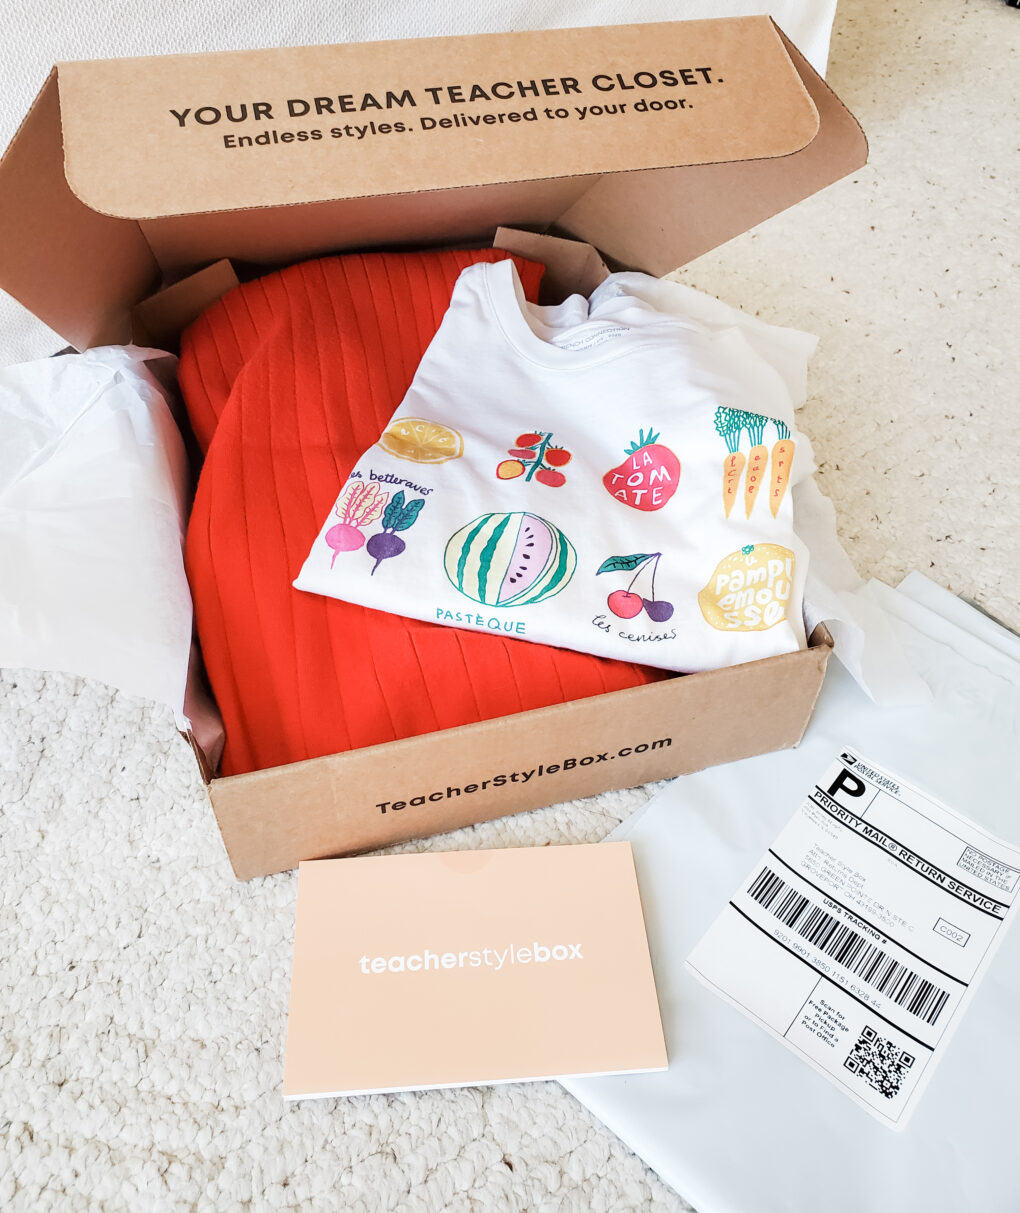 Teacher Style Box unboxing package